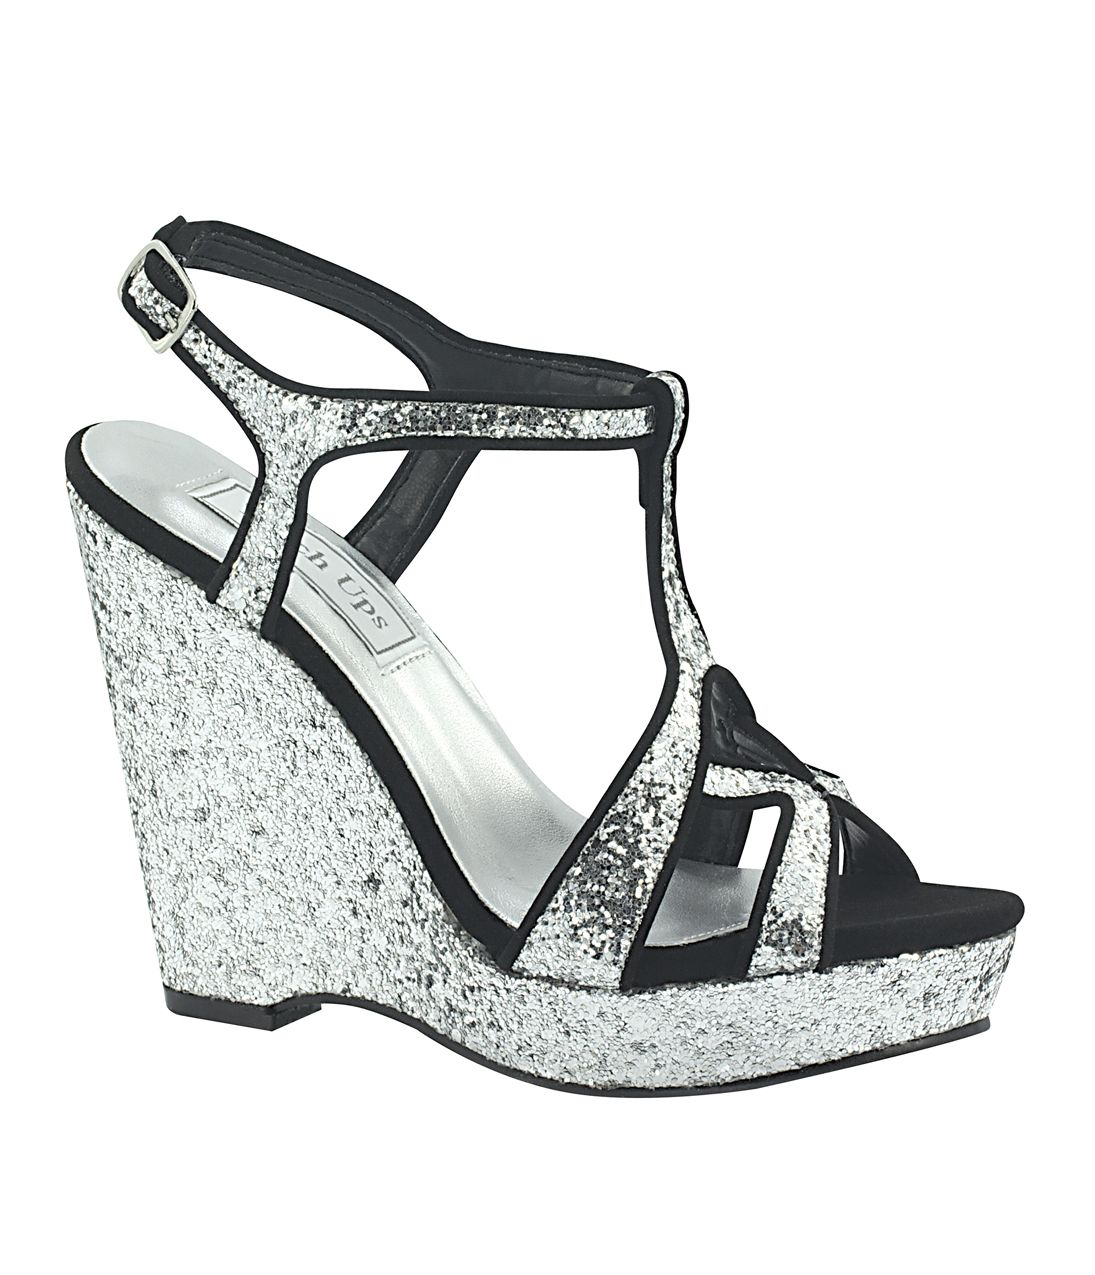 Superb OMG Someone Tell Me I Donu0027t Need These Shoes. THEYu0027RE GLITTERY